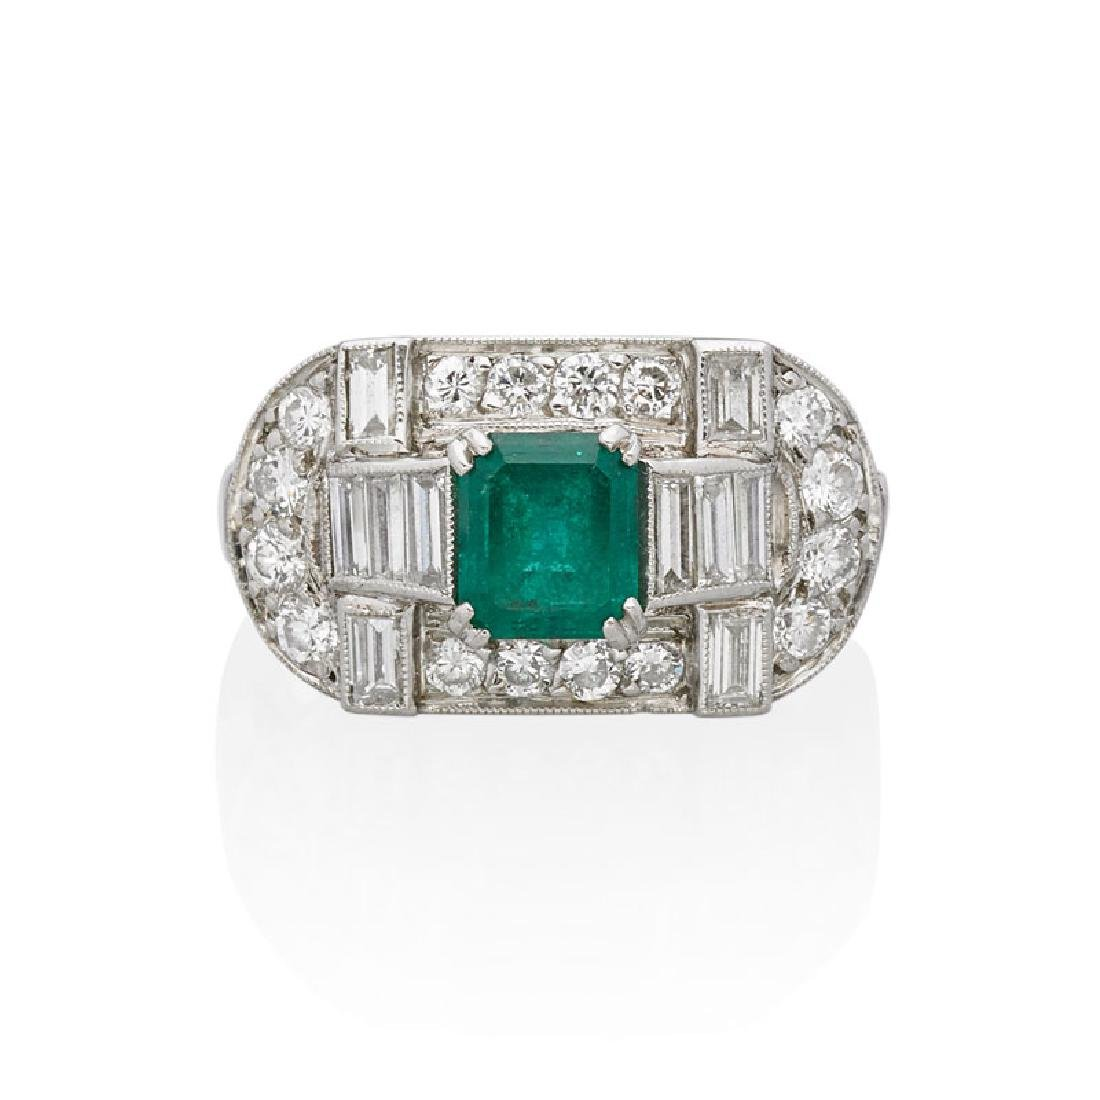 ART DECO EMERALD & DIAMOND PLATINUM RING